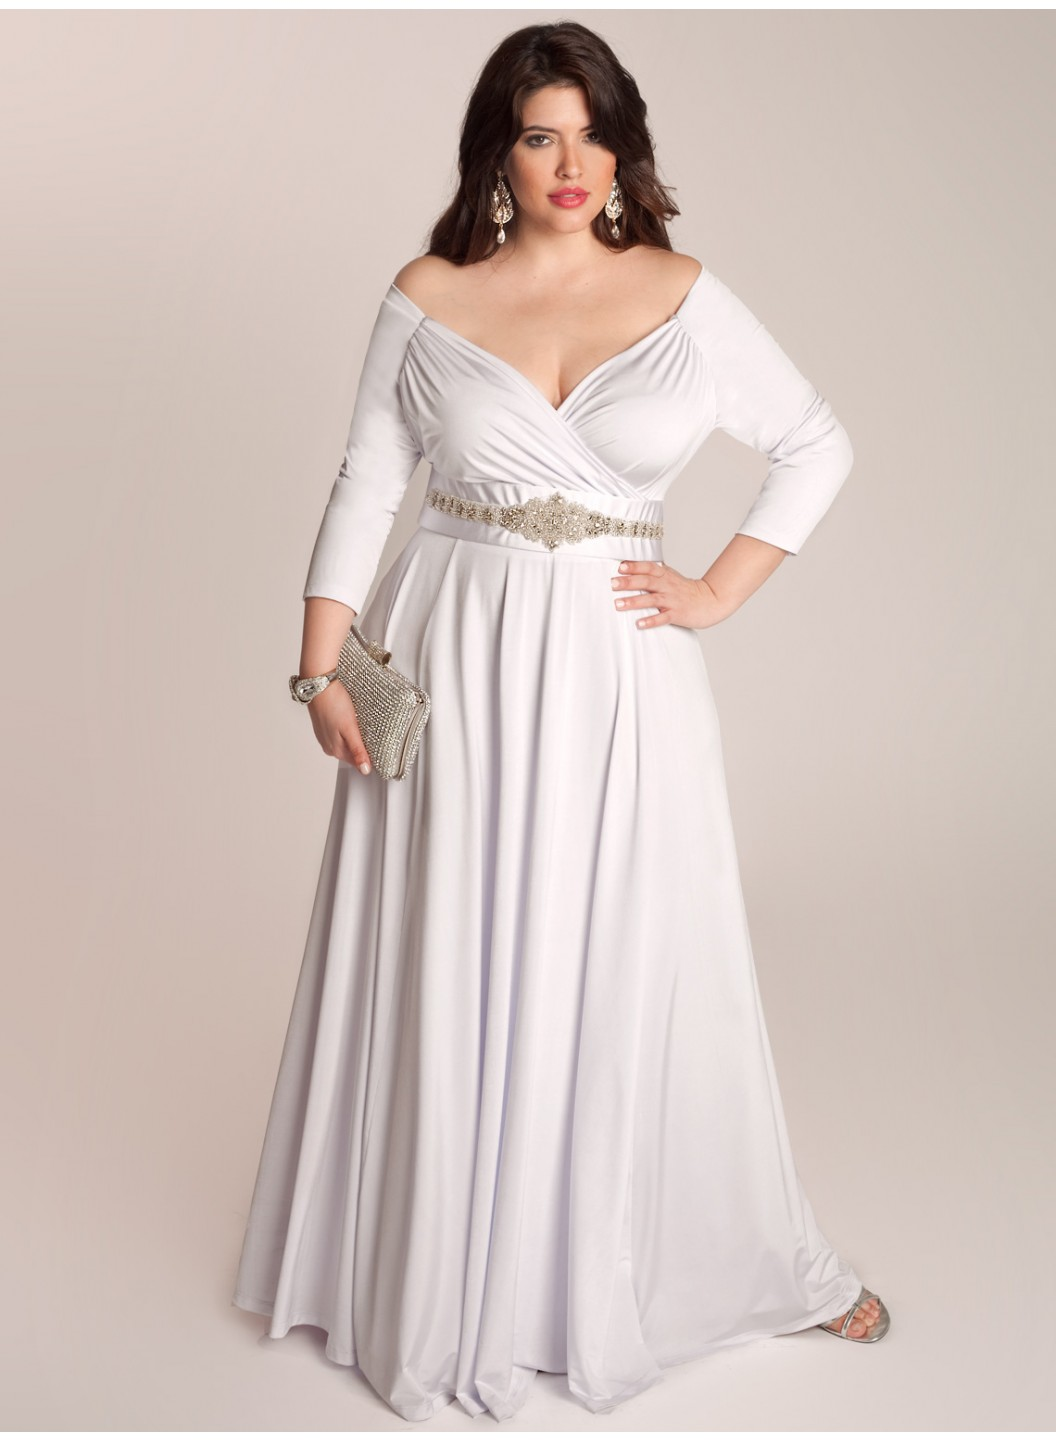 95efec2210f41 Plus Size Dressy Tops For Wedding Guests - Best Wedding Ampleimage.co